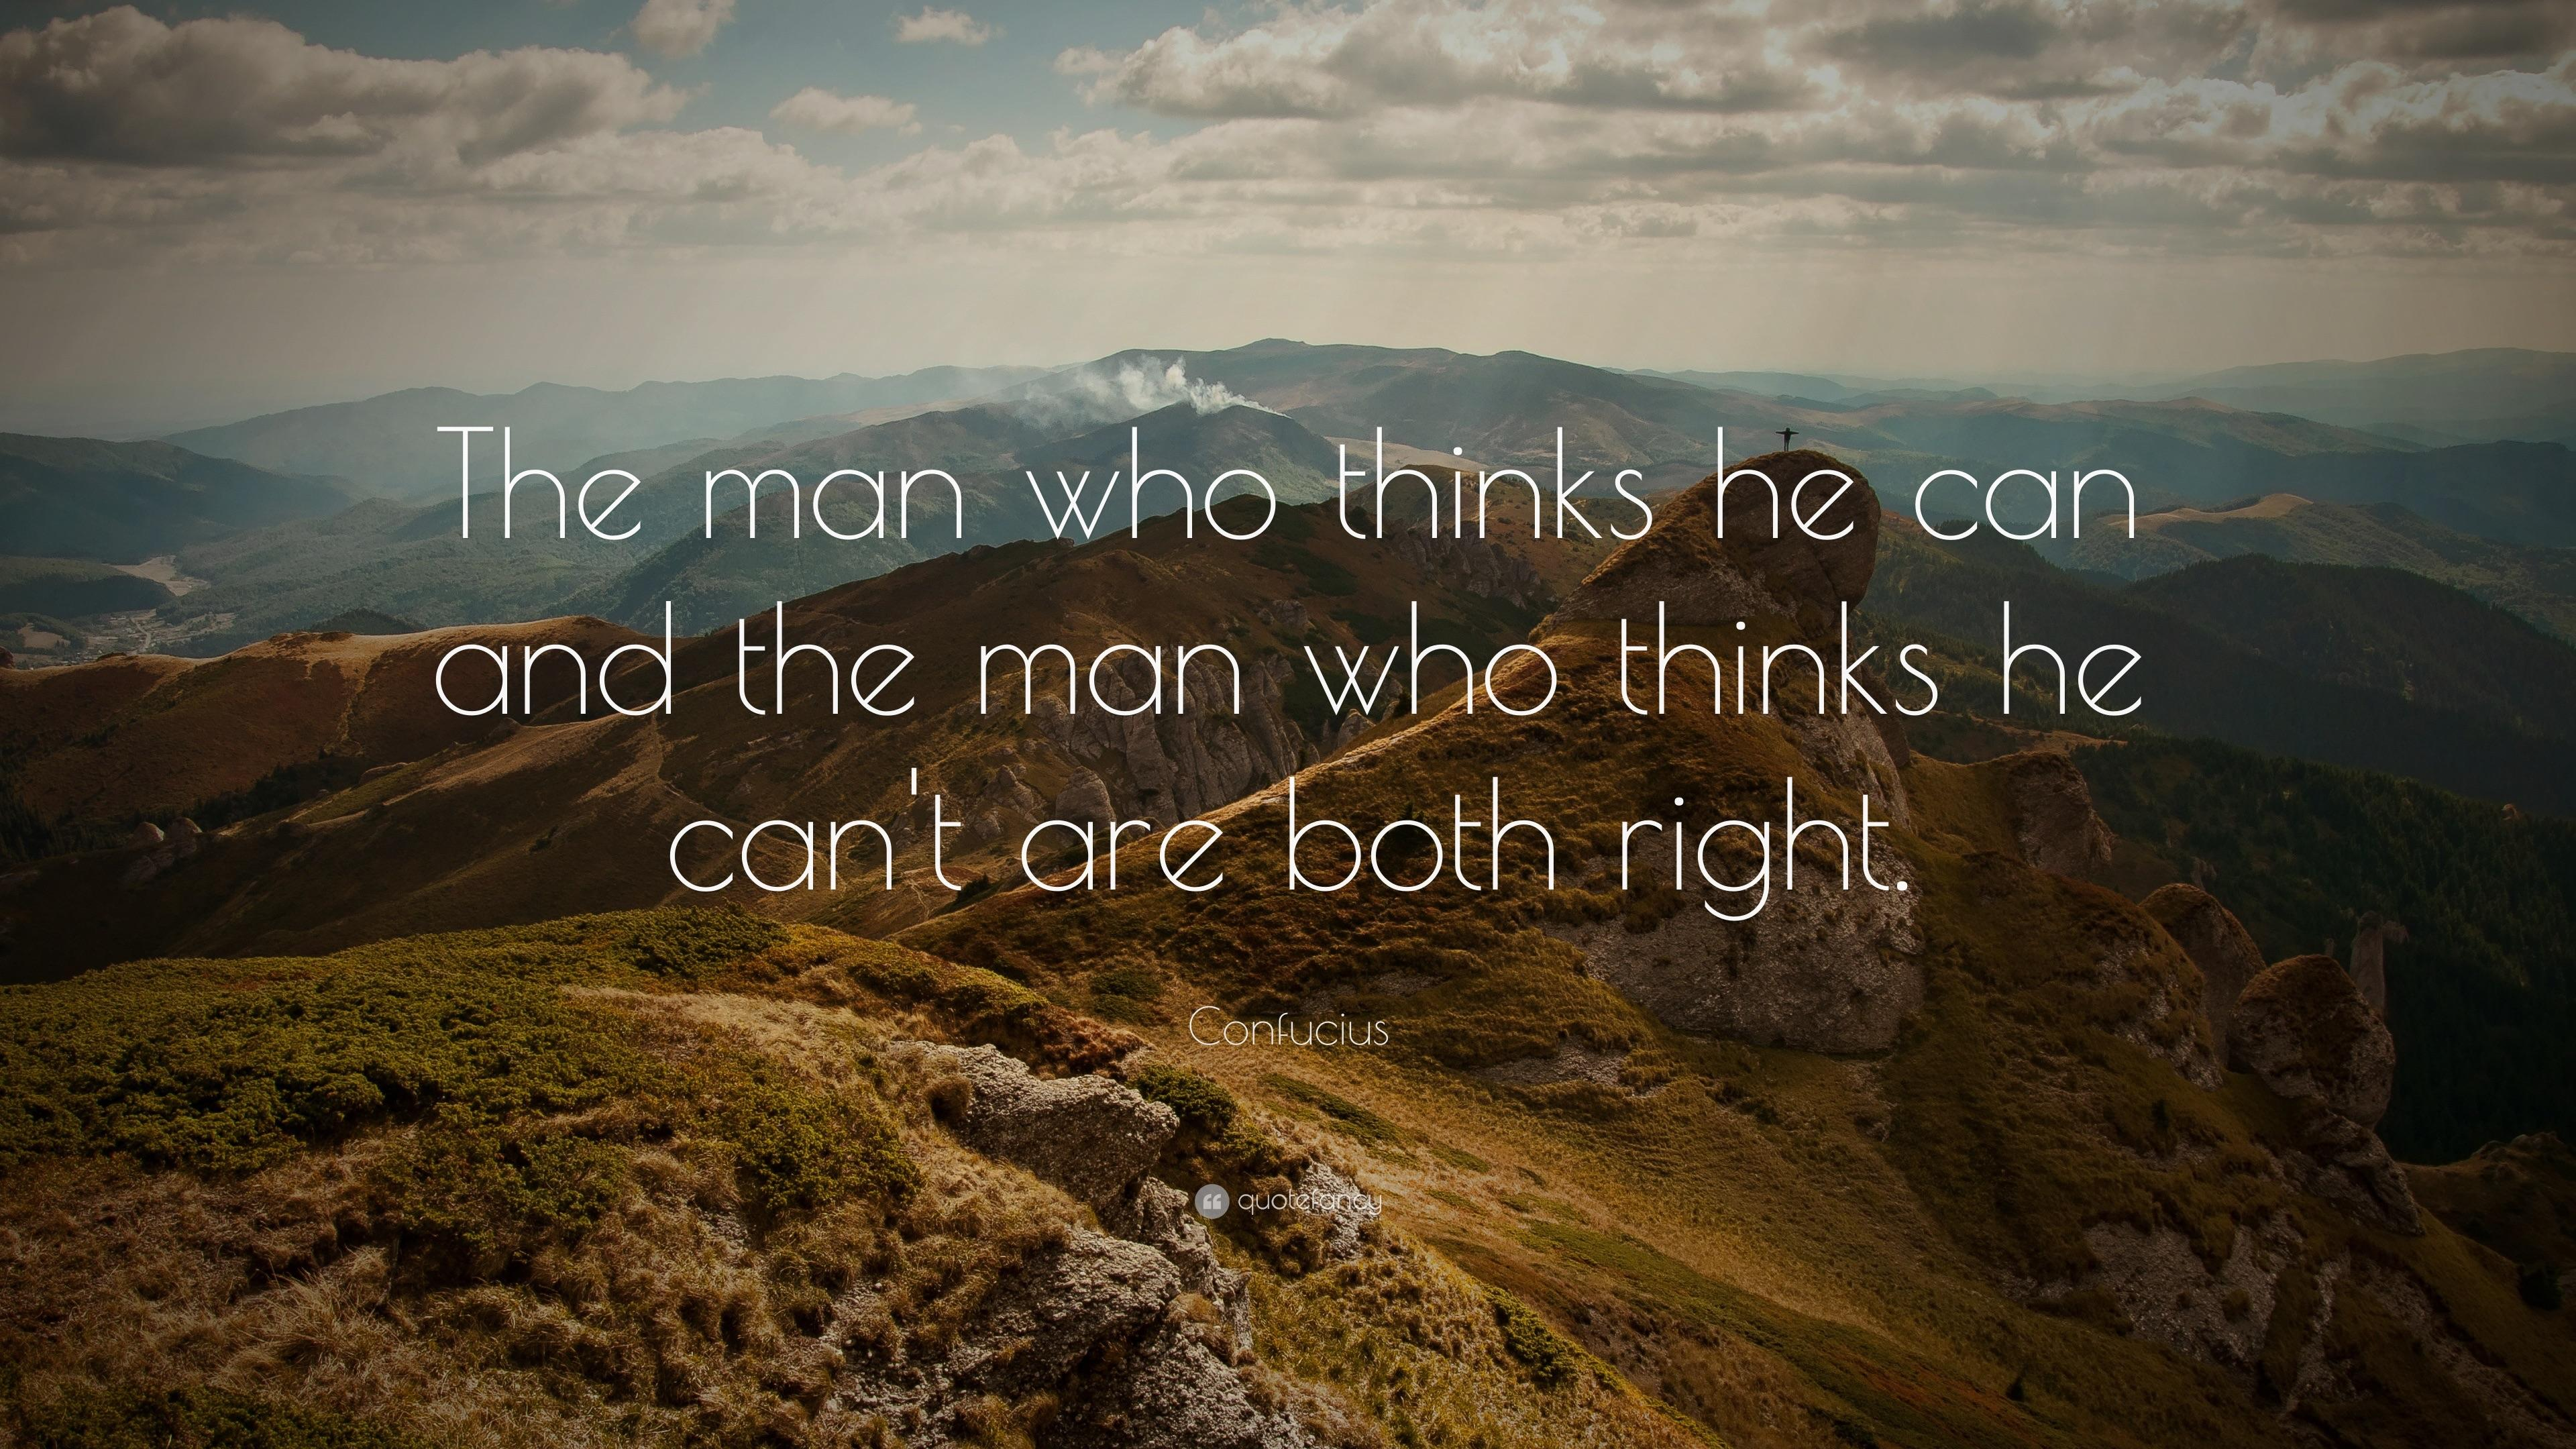 The man who thinks he can and the man who thinks he can't are both right